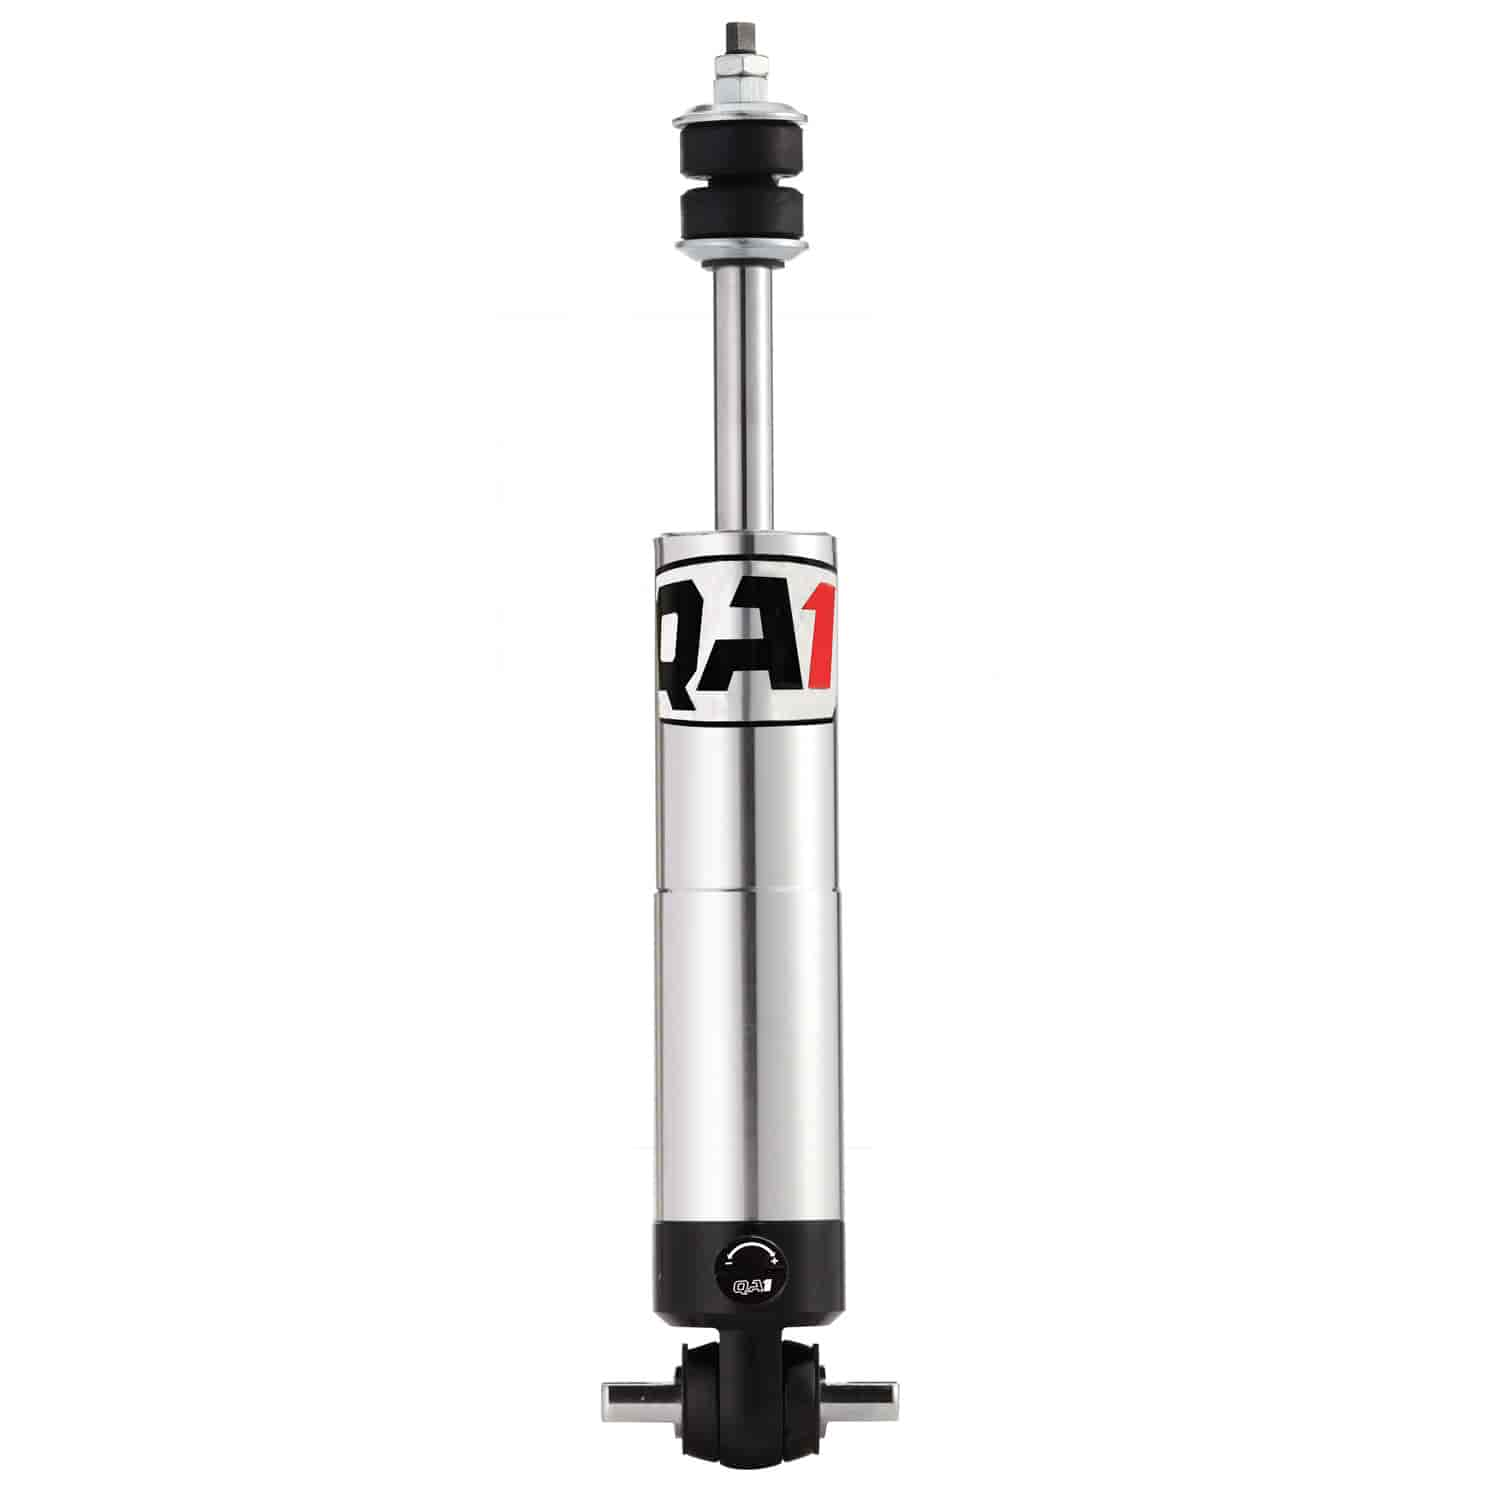 QA1 TS511 - QA1 Stocker Star Adjustable Shocks